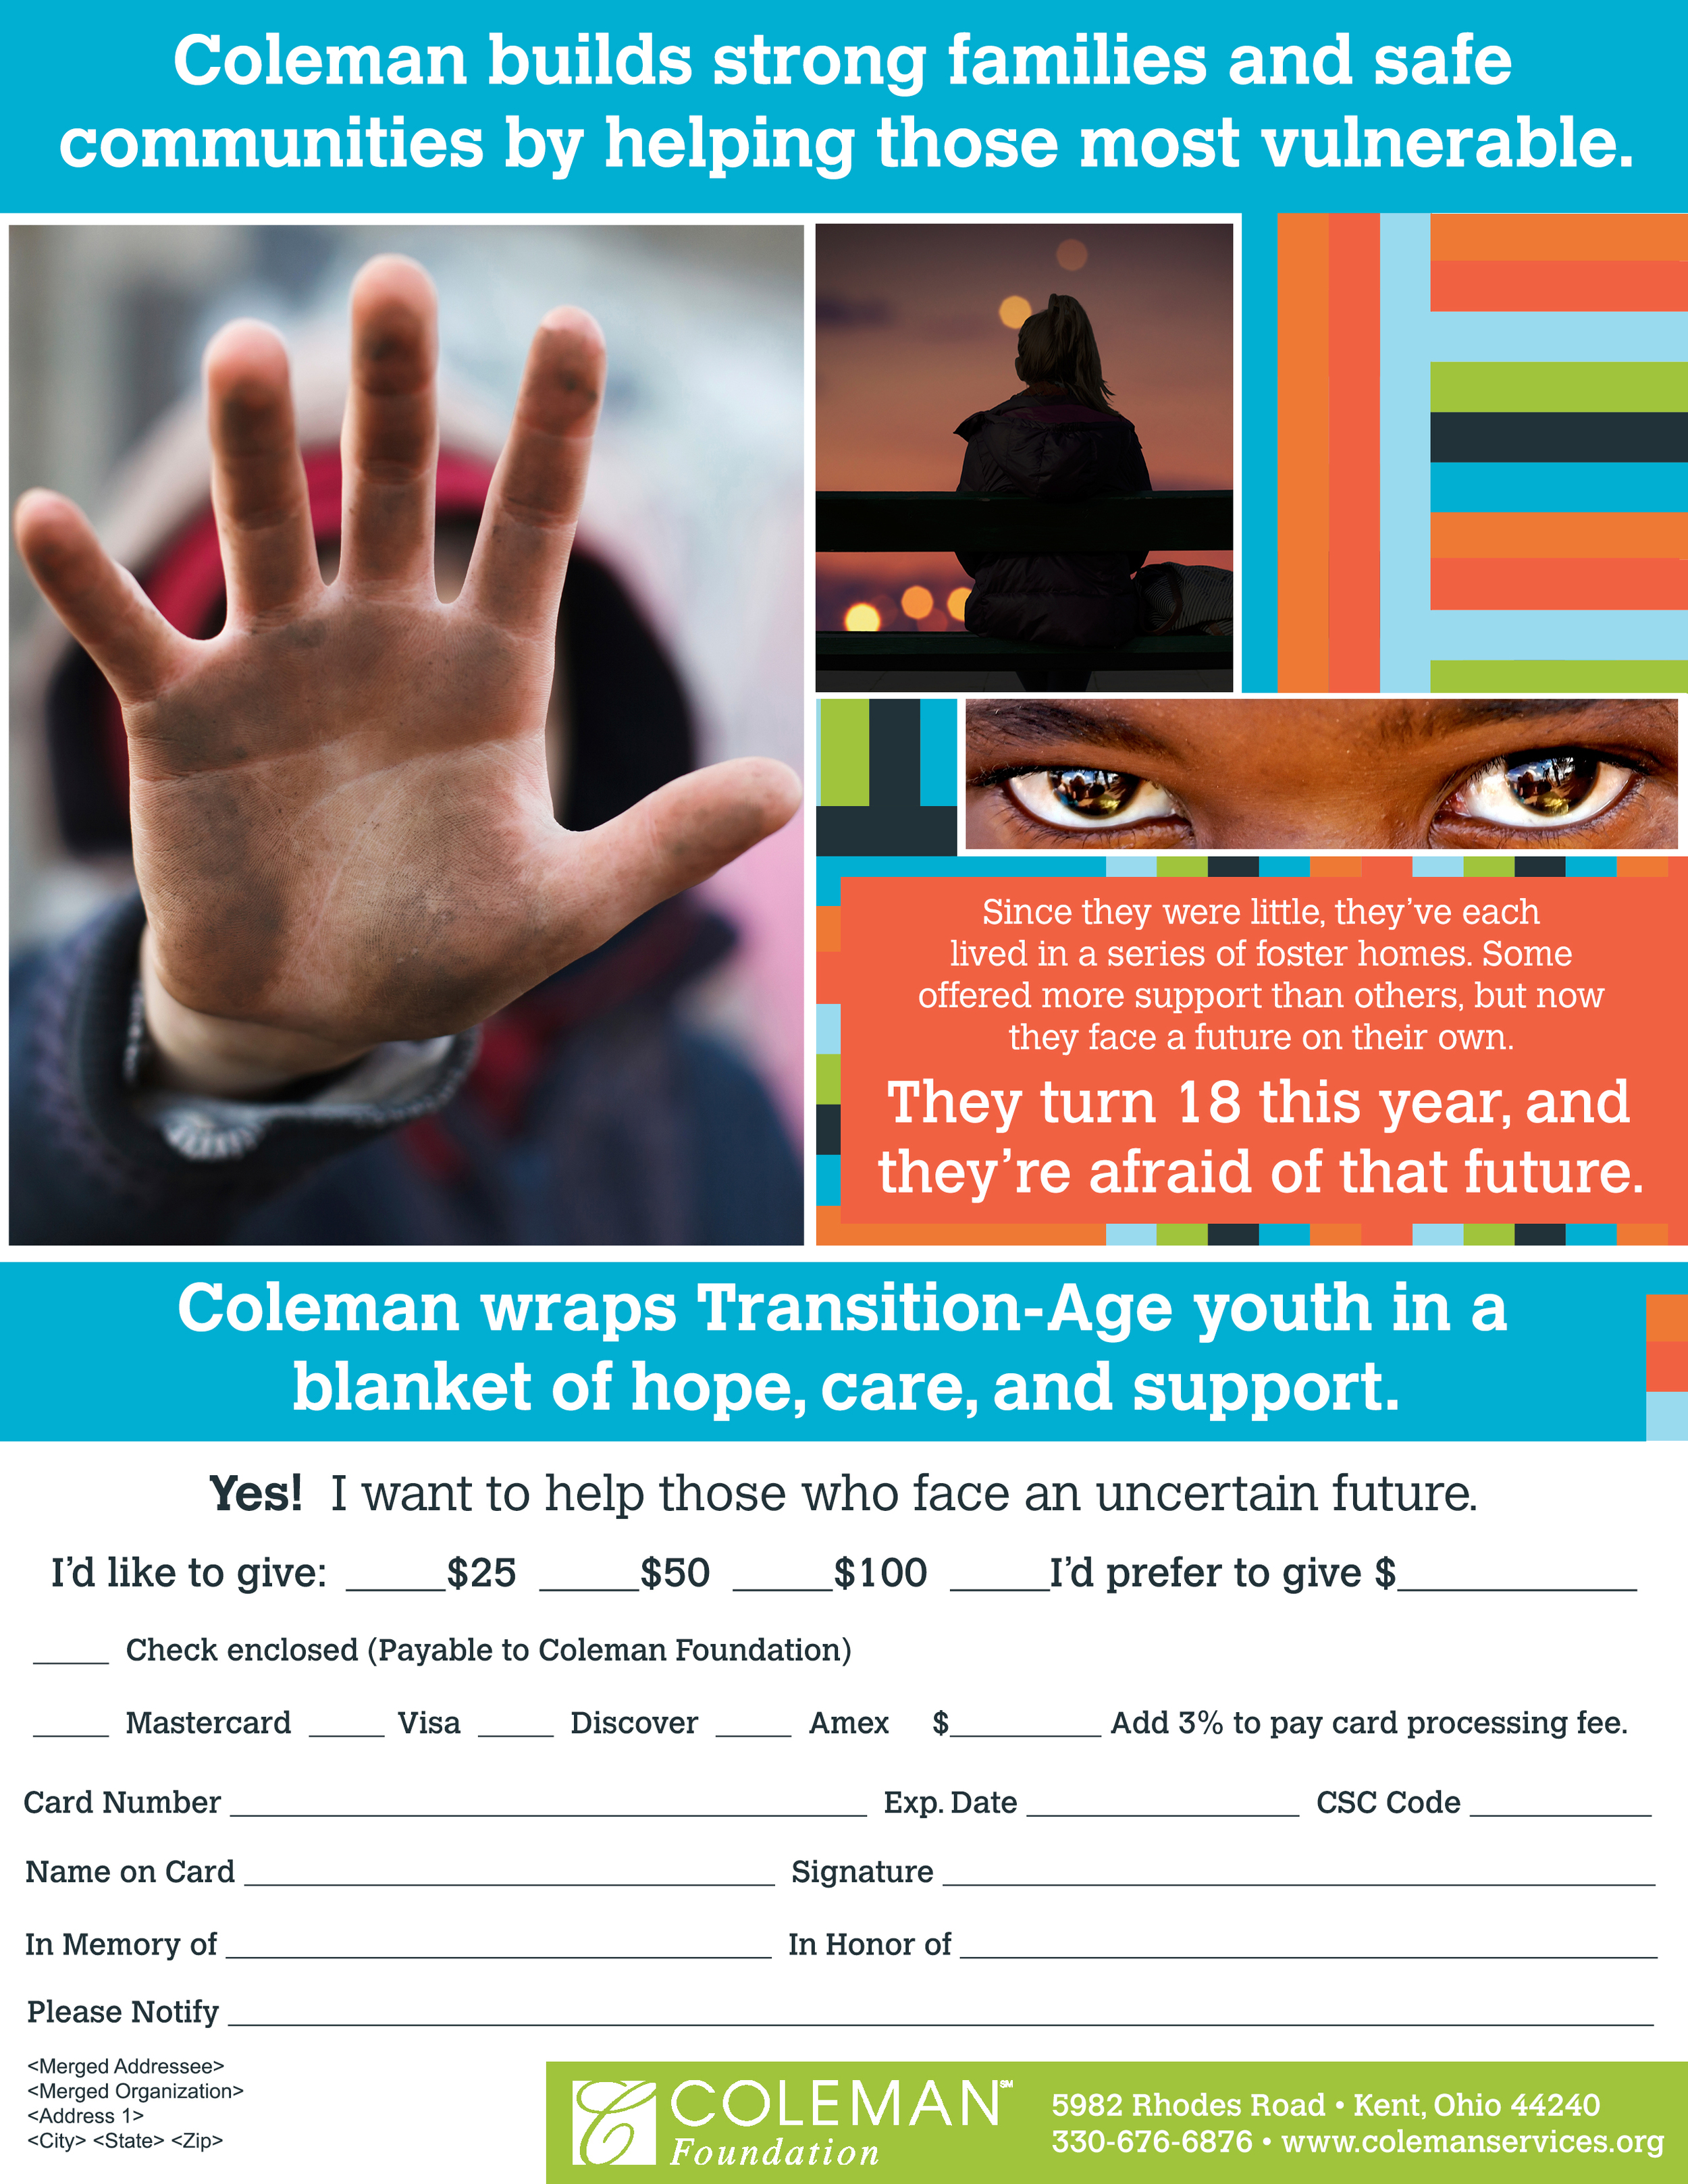 DONATION SHEET FOR THE COLEMAN FOUNDATION